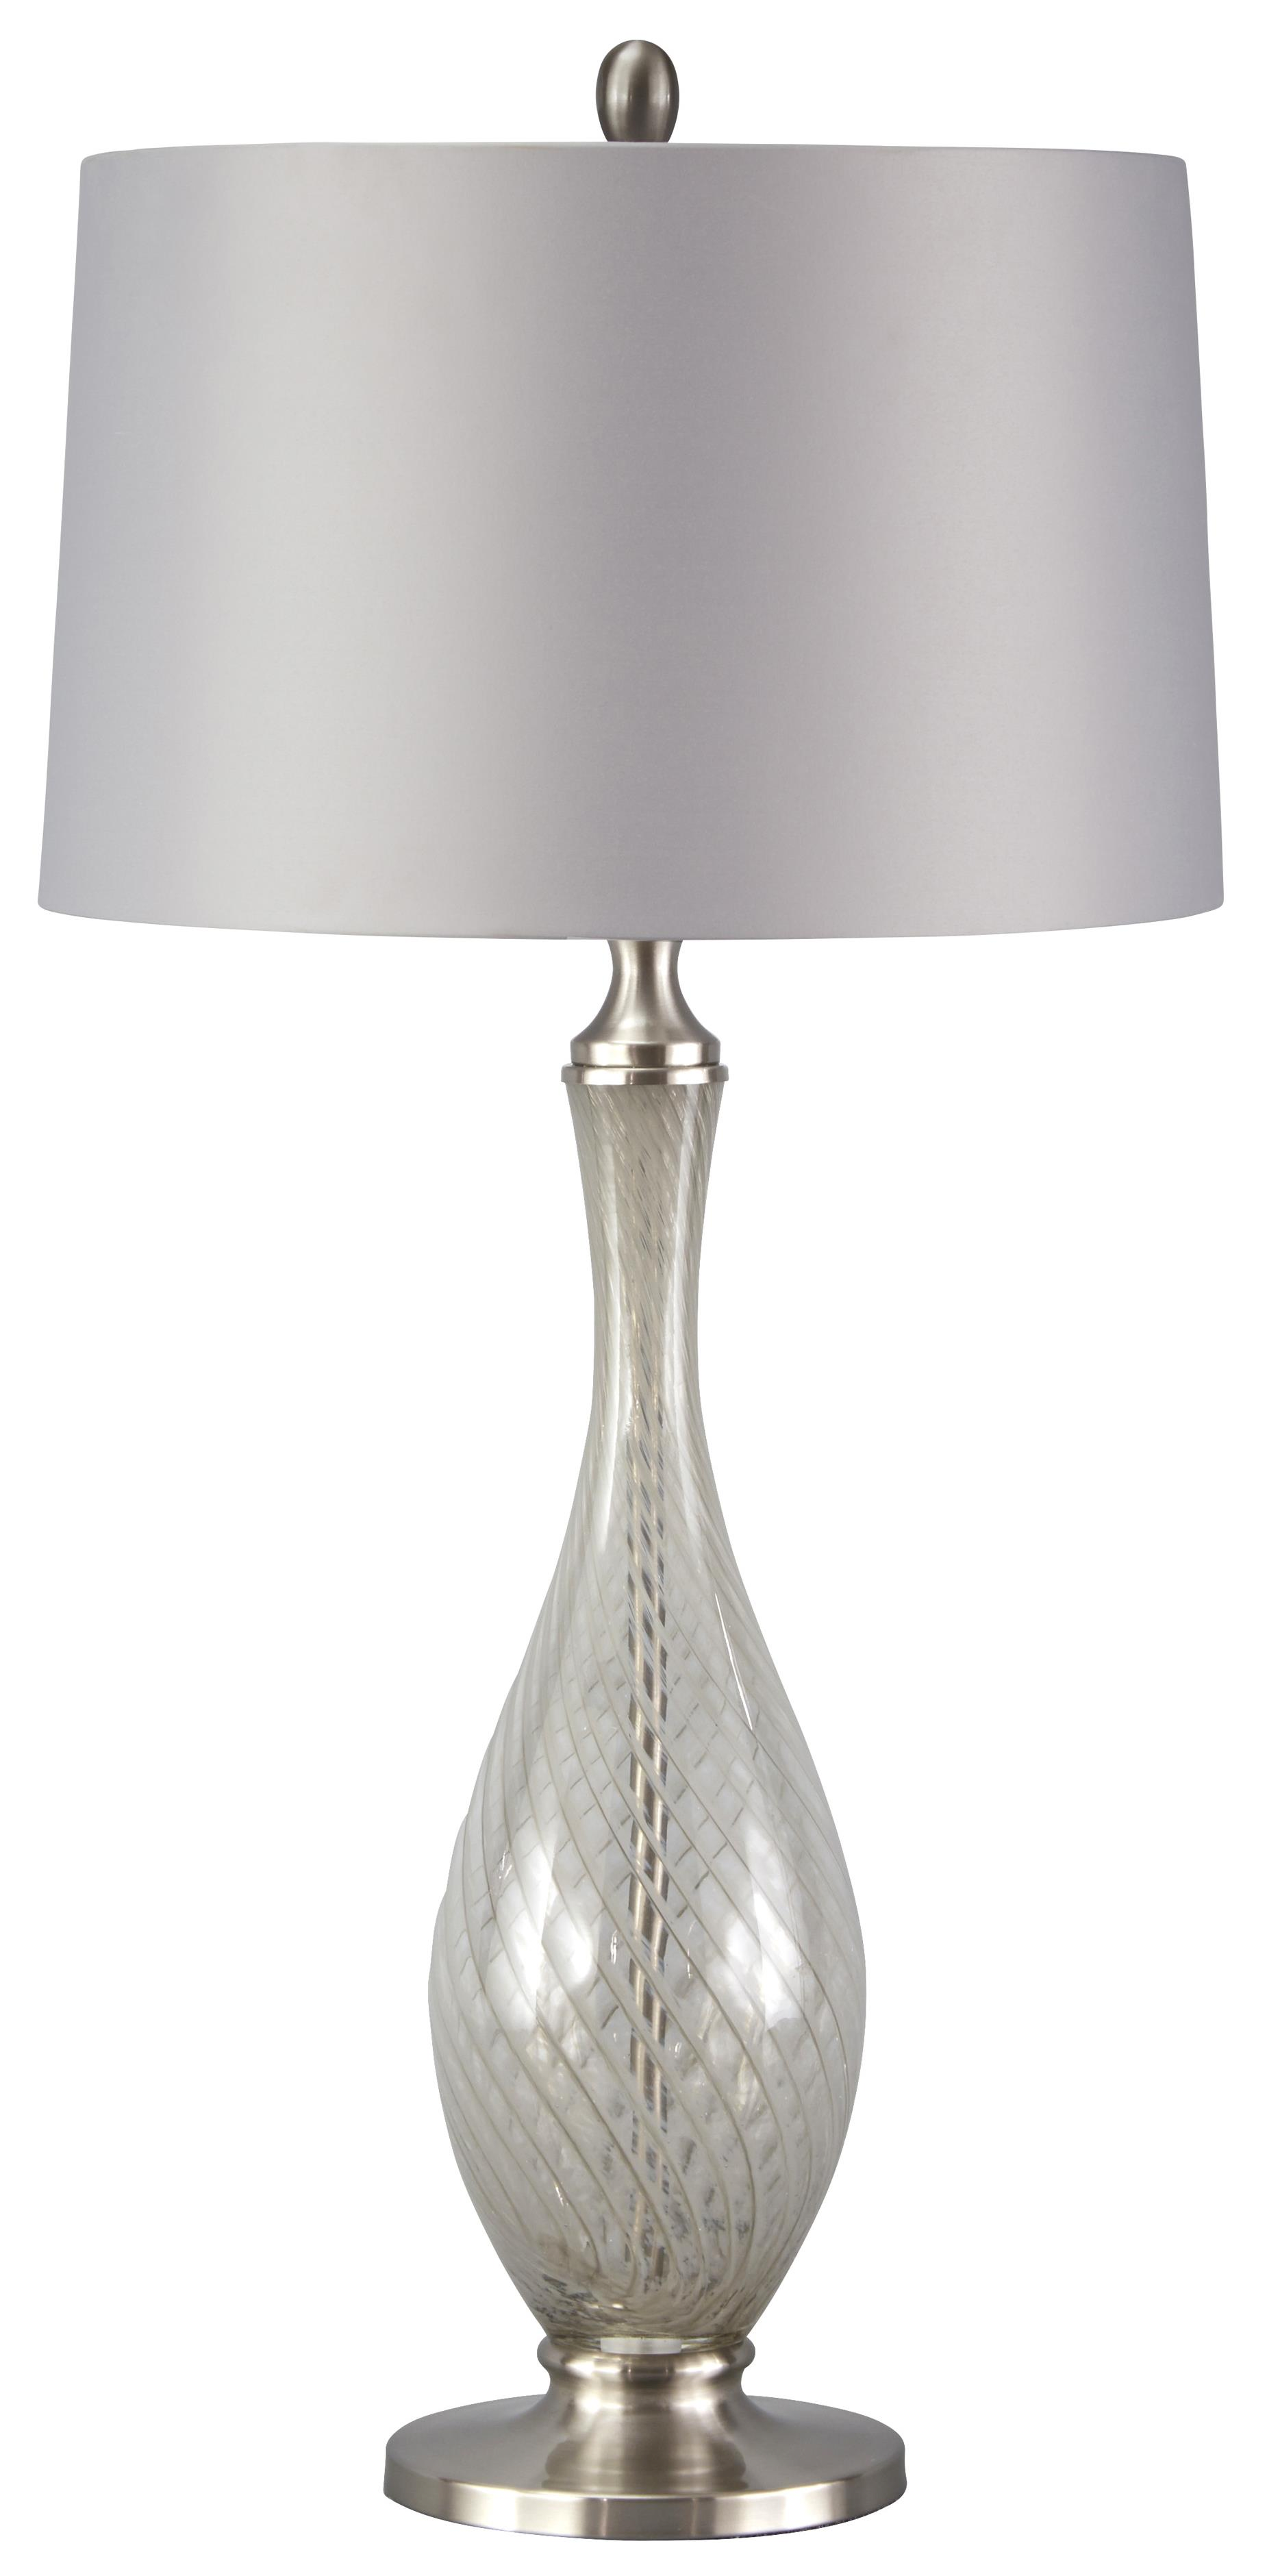 Signature Design by Ashley Lamps - Traditional Classics Samanthee Glass Table Lamp - Item Number: L430094